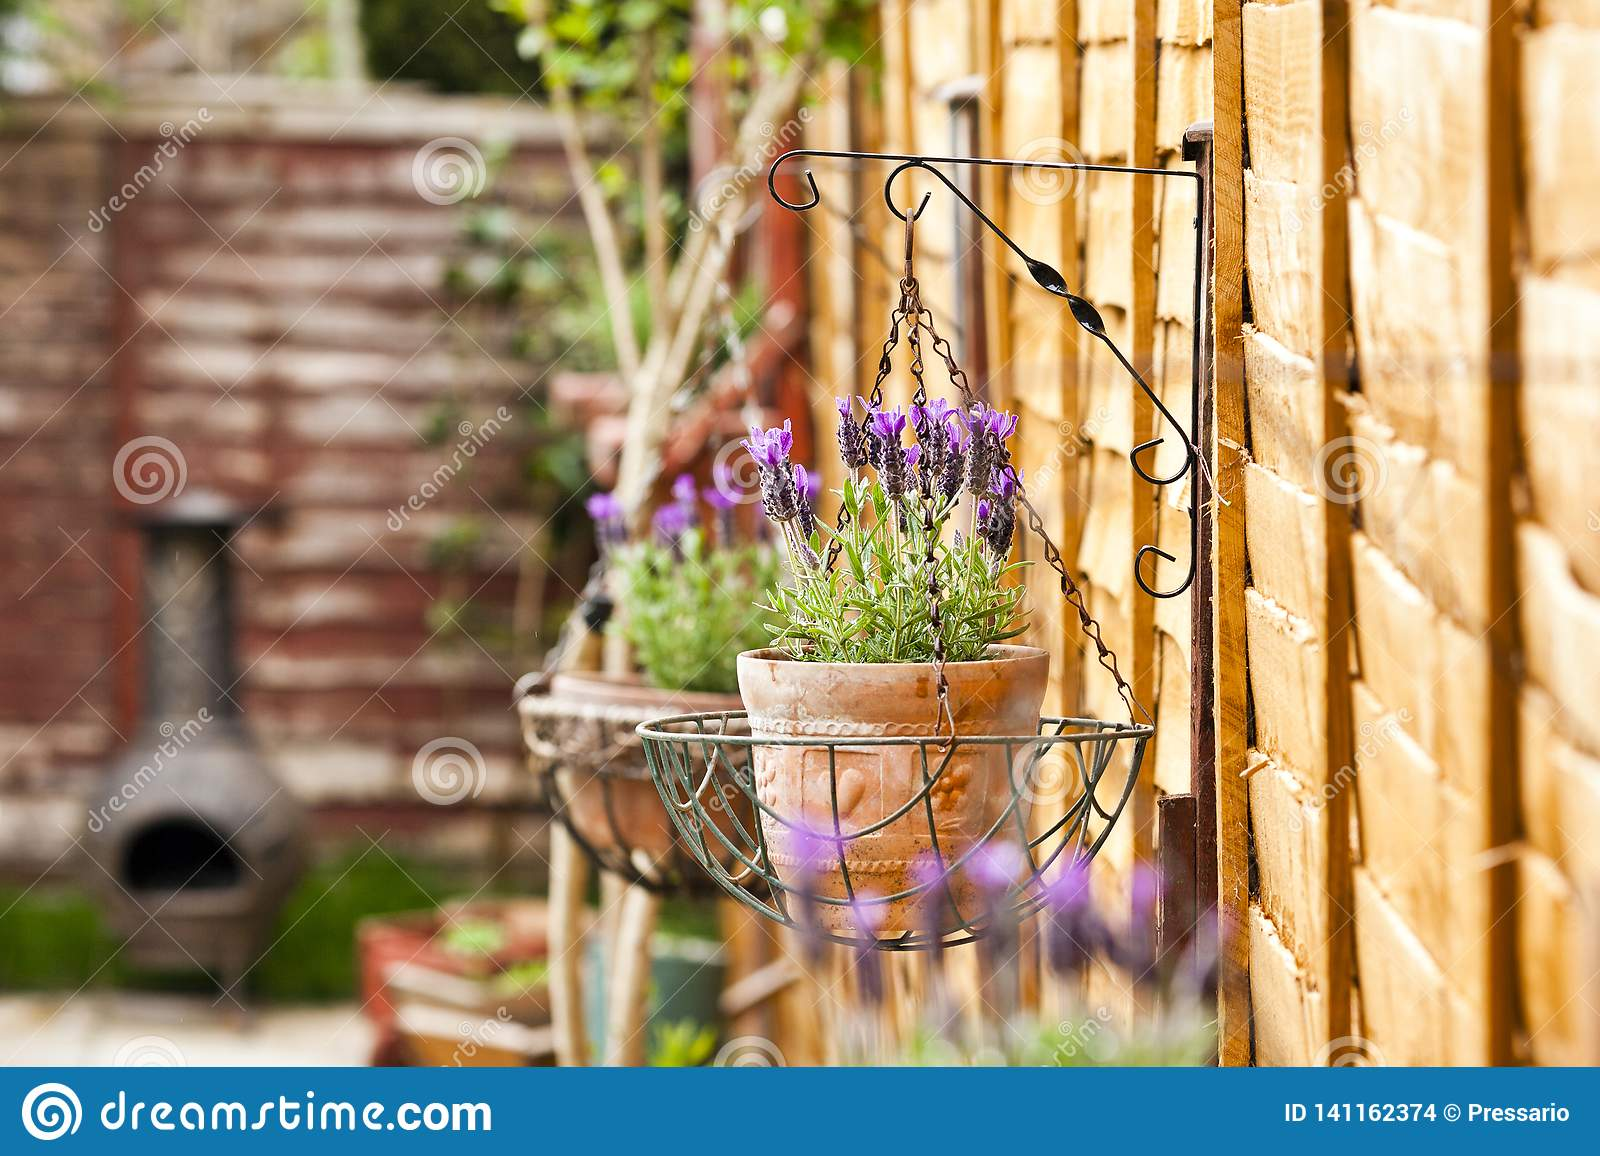 Newly grown french lavender healthy plant in a home relaxing garden spot